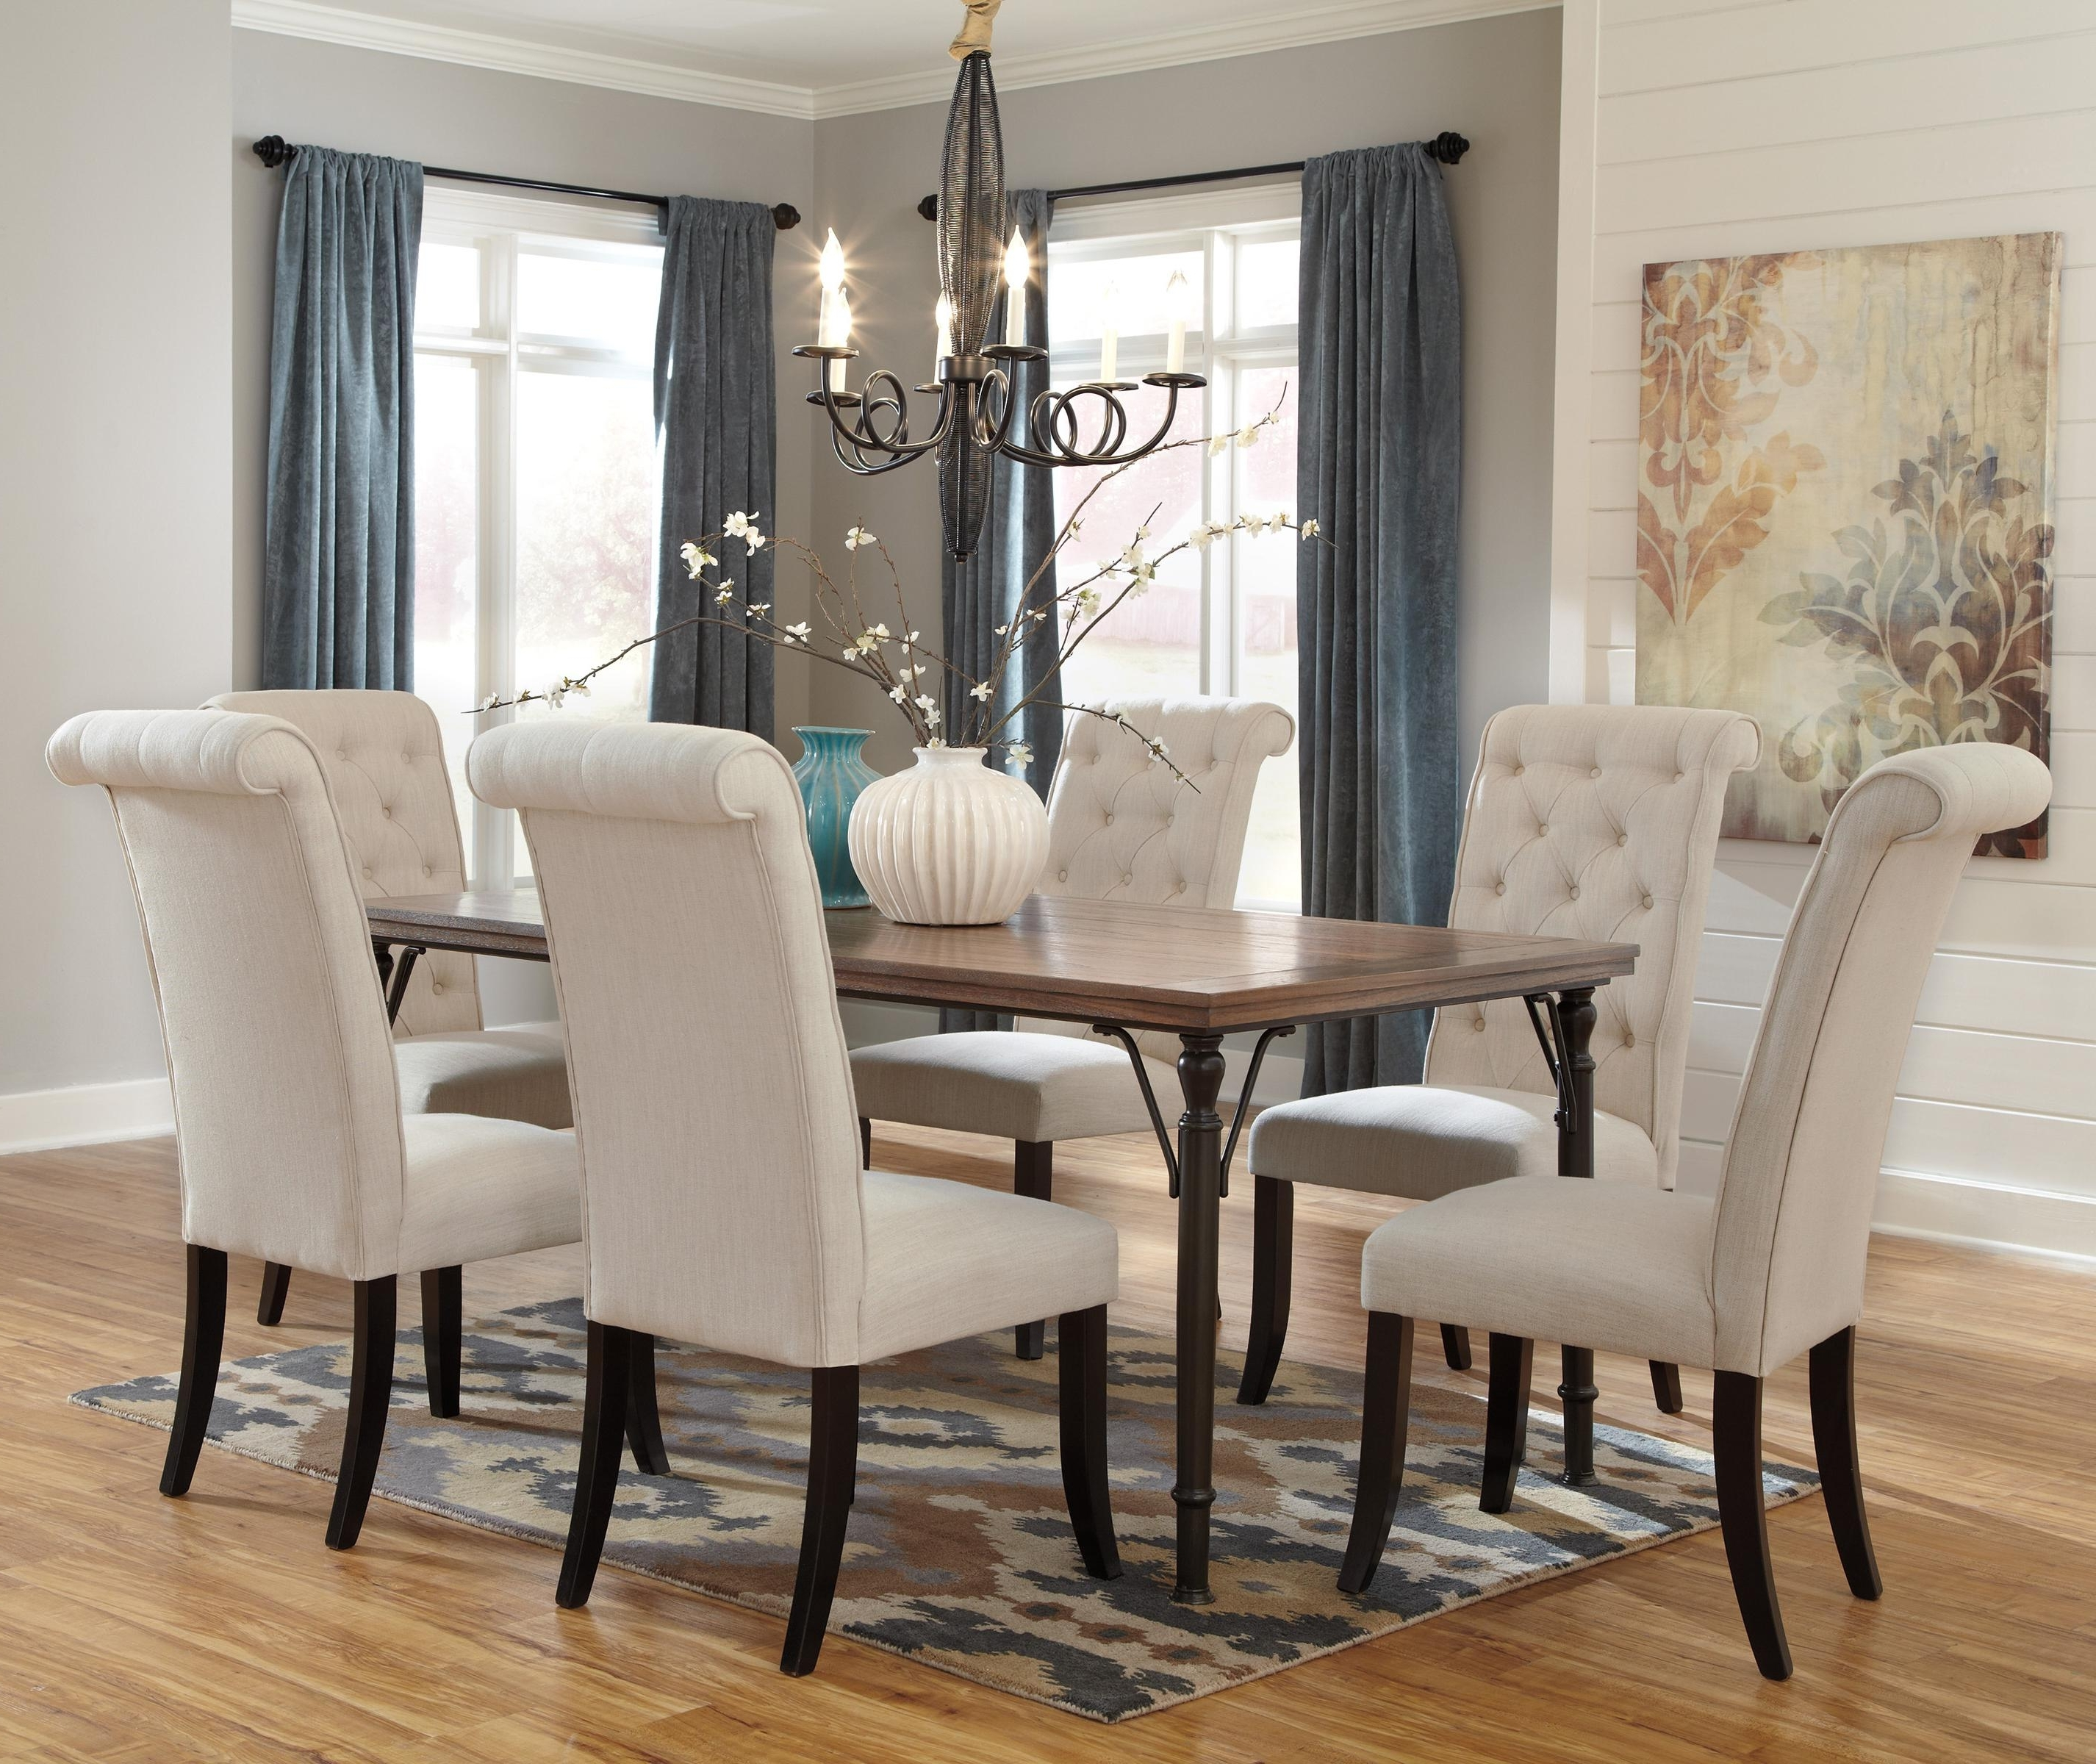 Recent 7 Piece Rectangular Dining Room Table Set W/ Wood Top & Metal Legs Throughout Dining Room Tables (View 17 of 25)